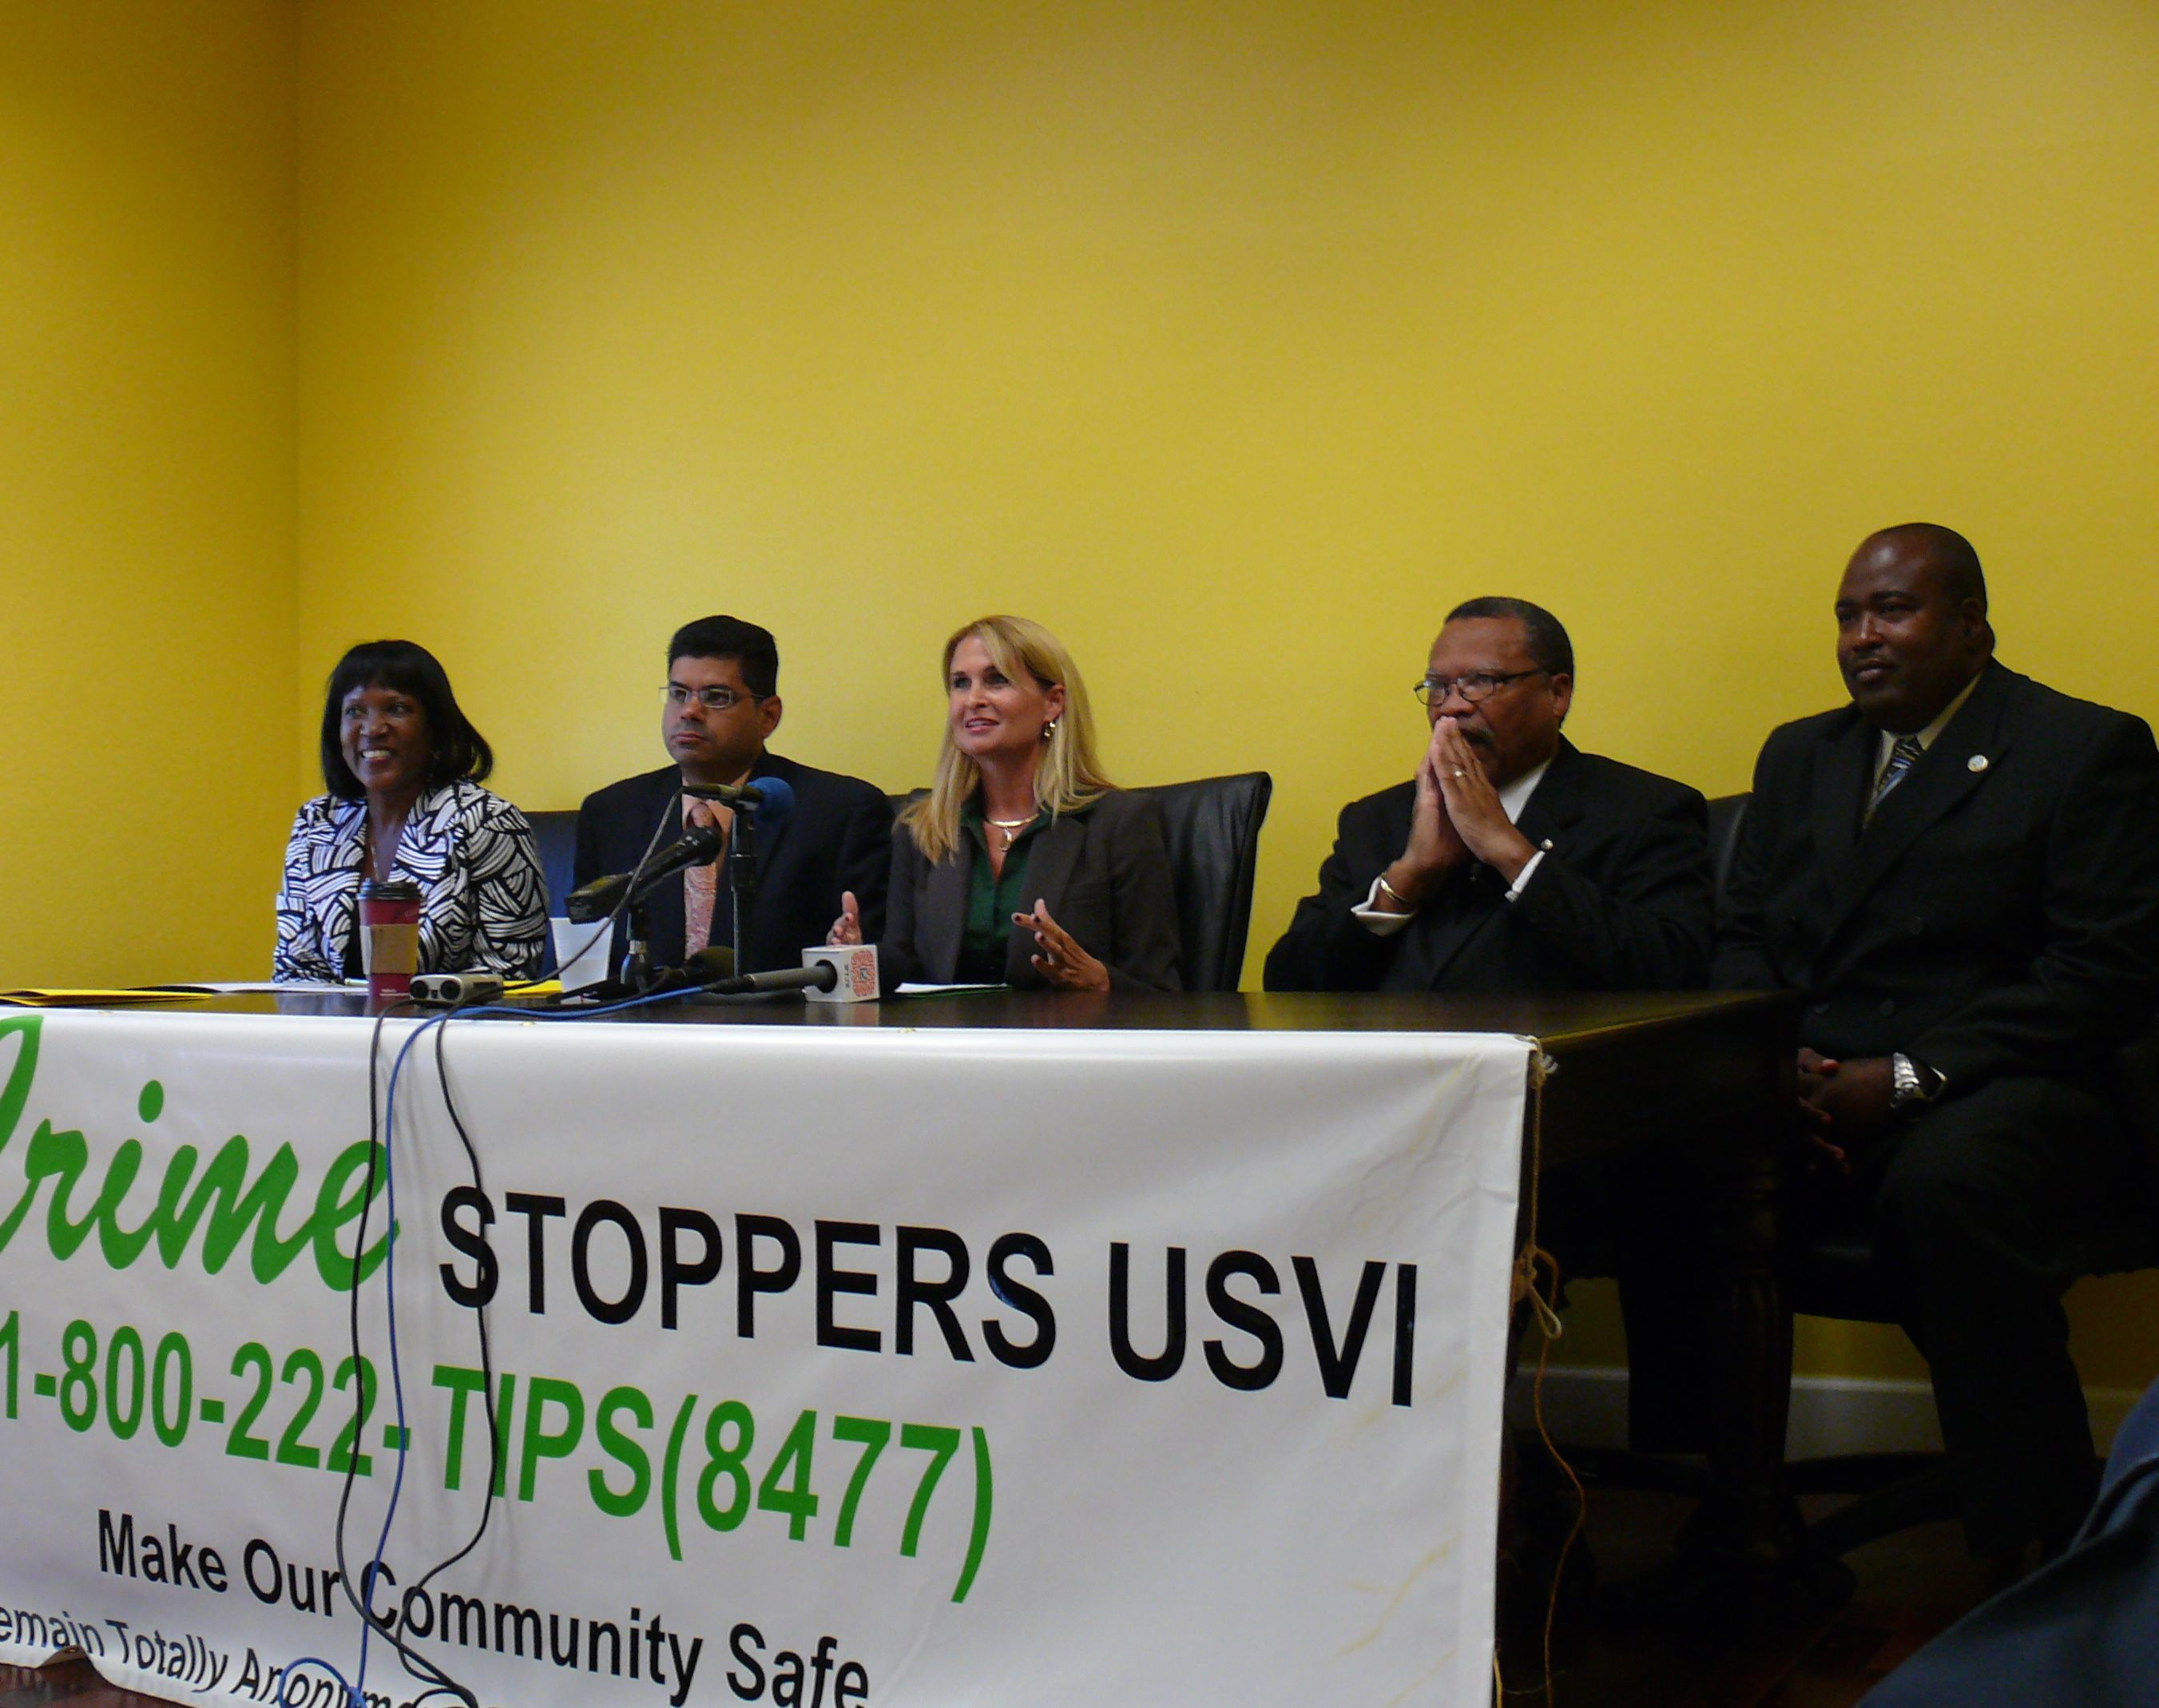 Crime Stoppers USVI's Judith Fricks (center) pointed to a long list of achievements during Tuesday's press conference.